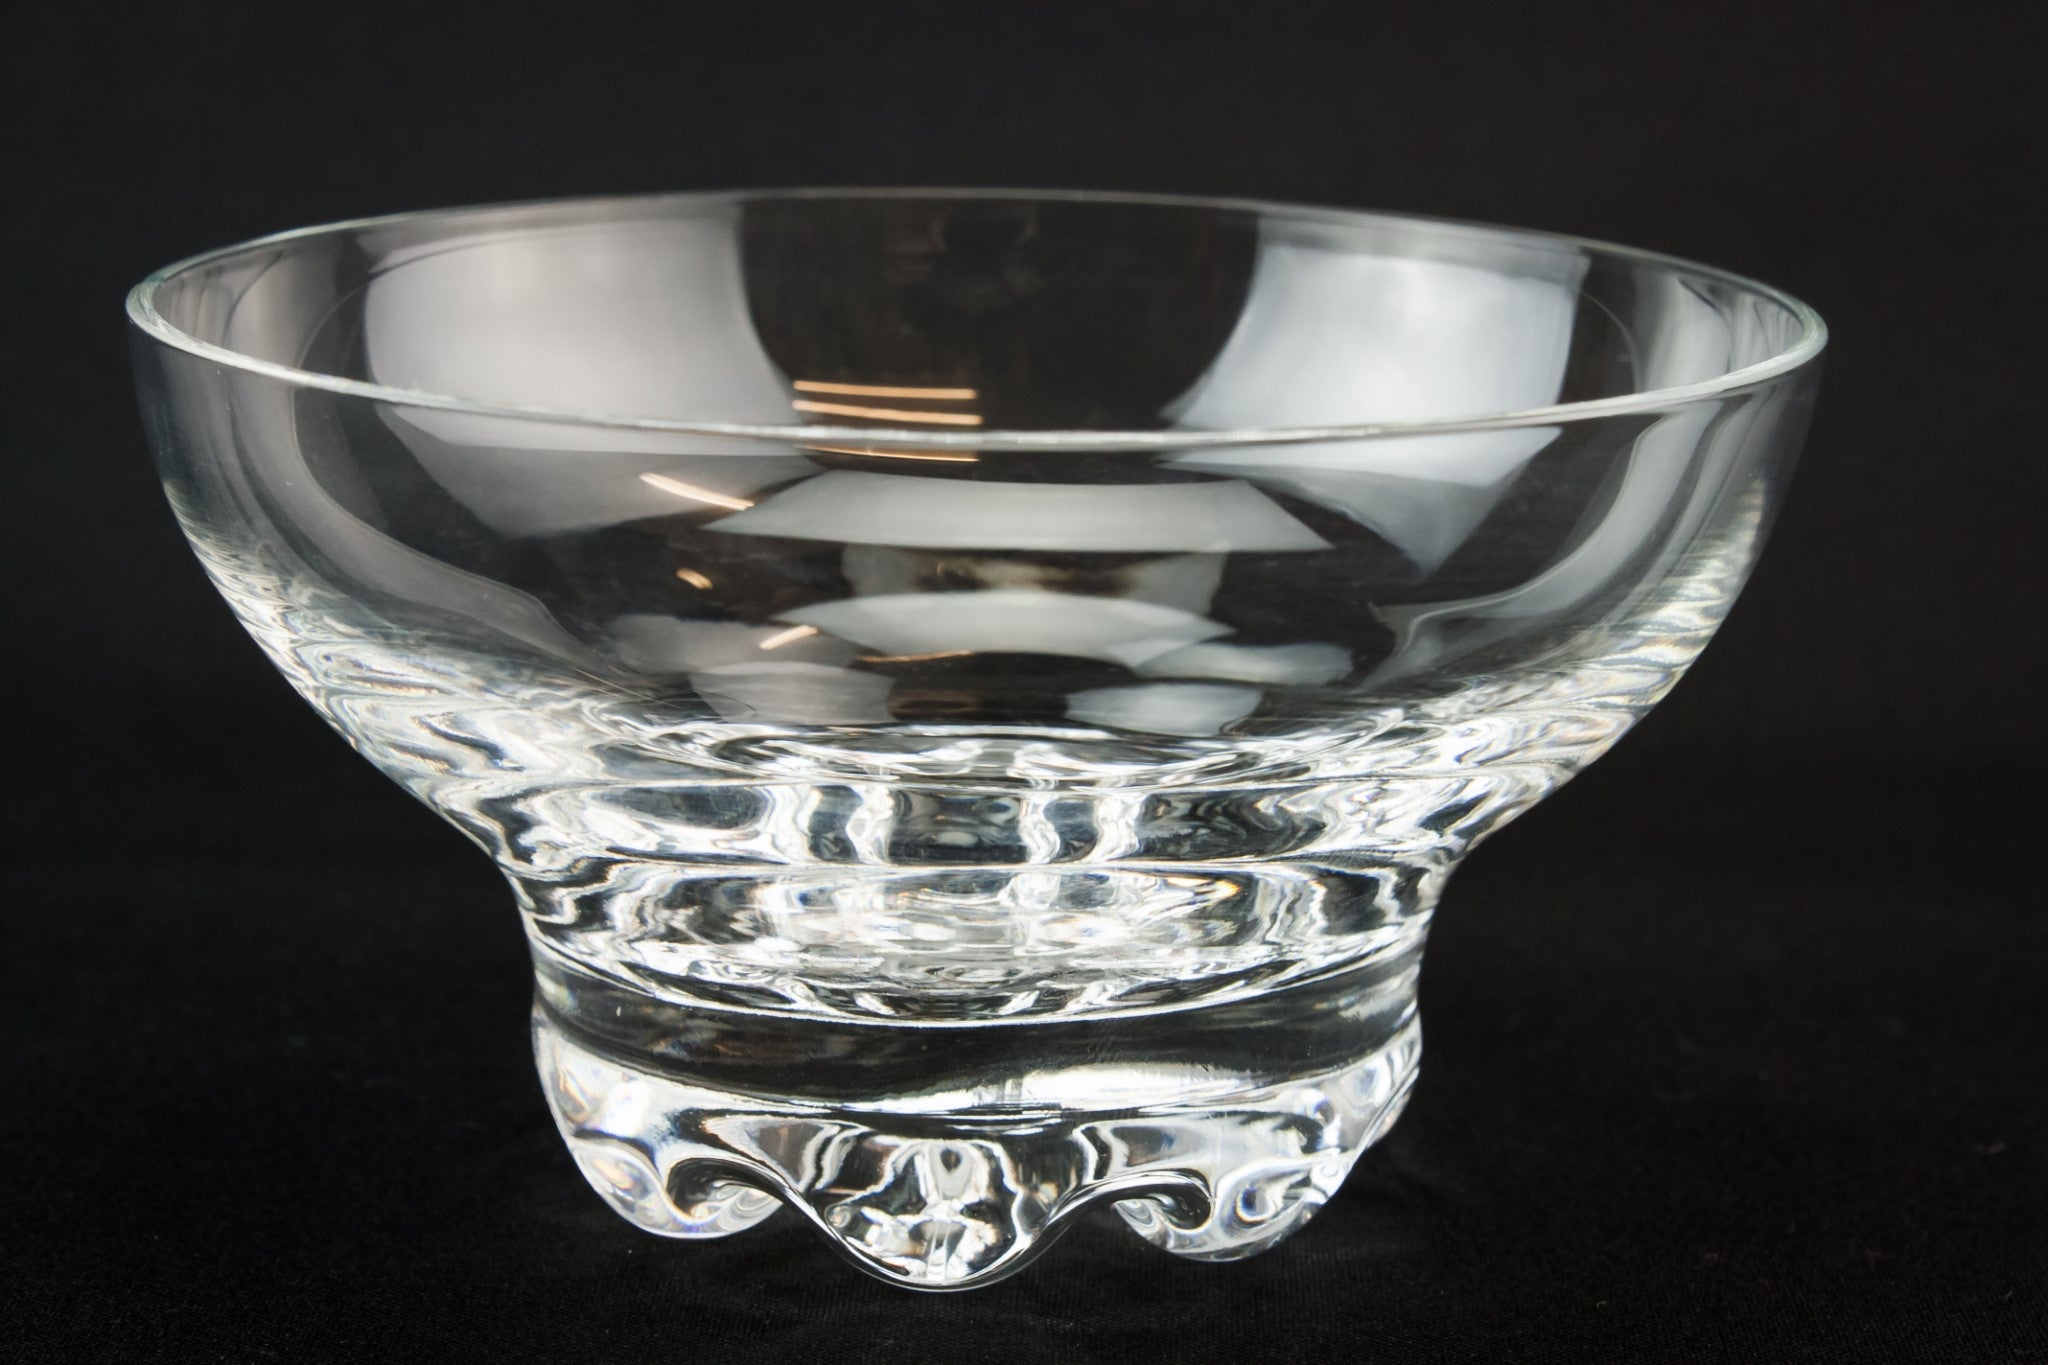 6 glass dessert bowls